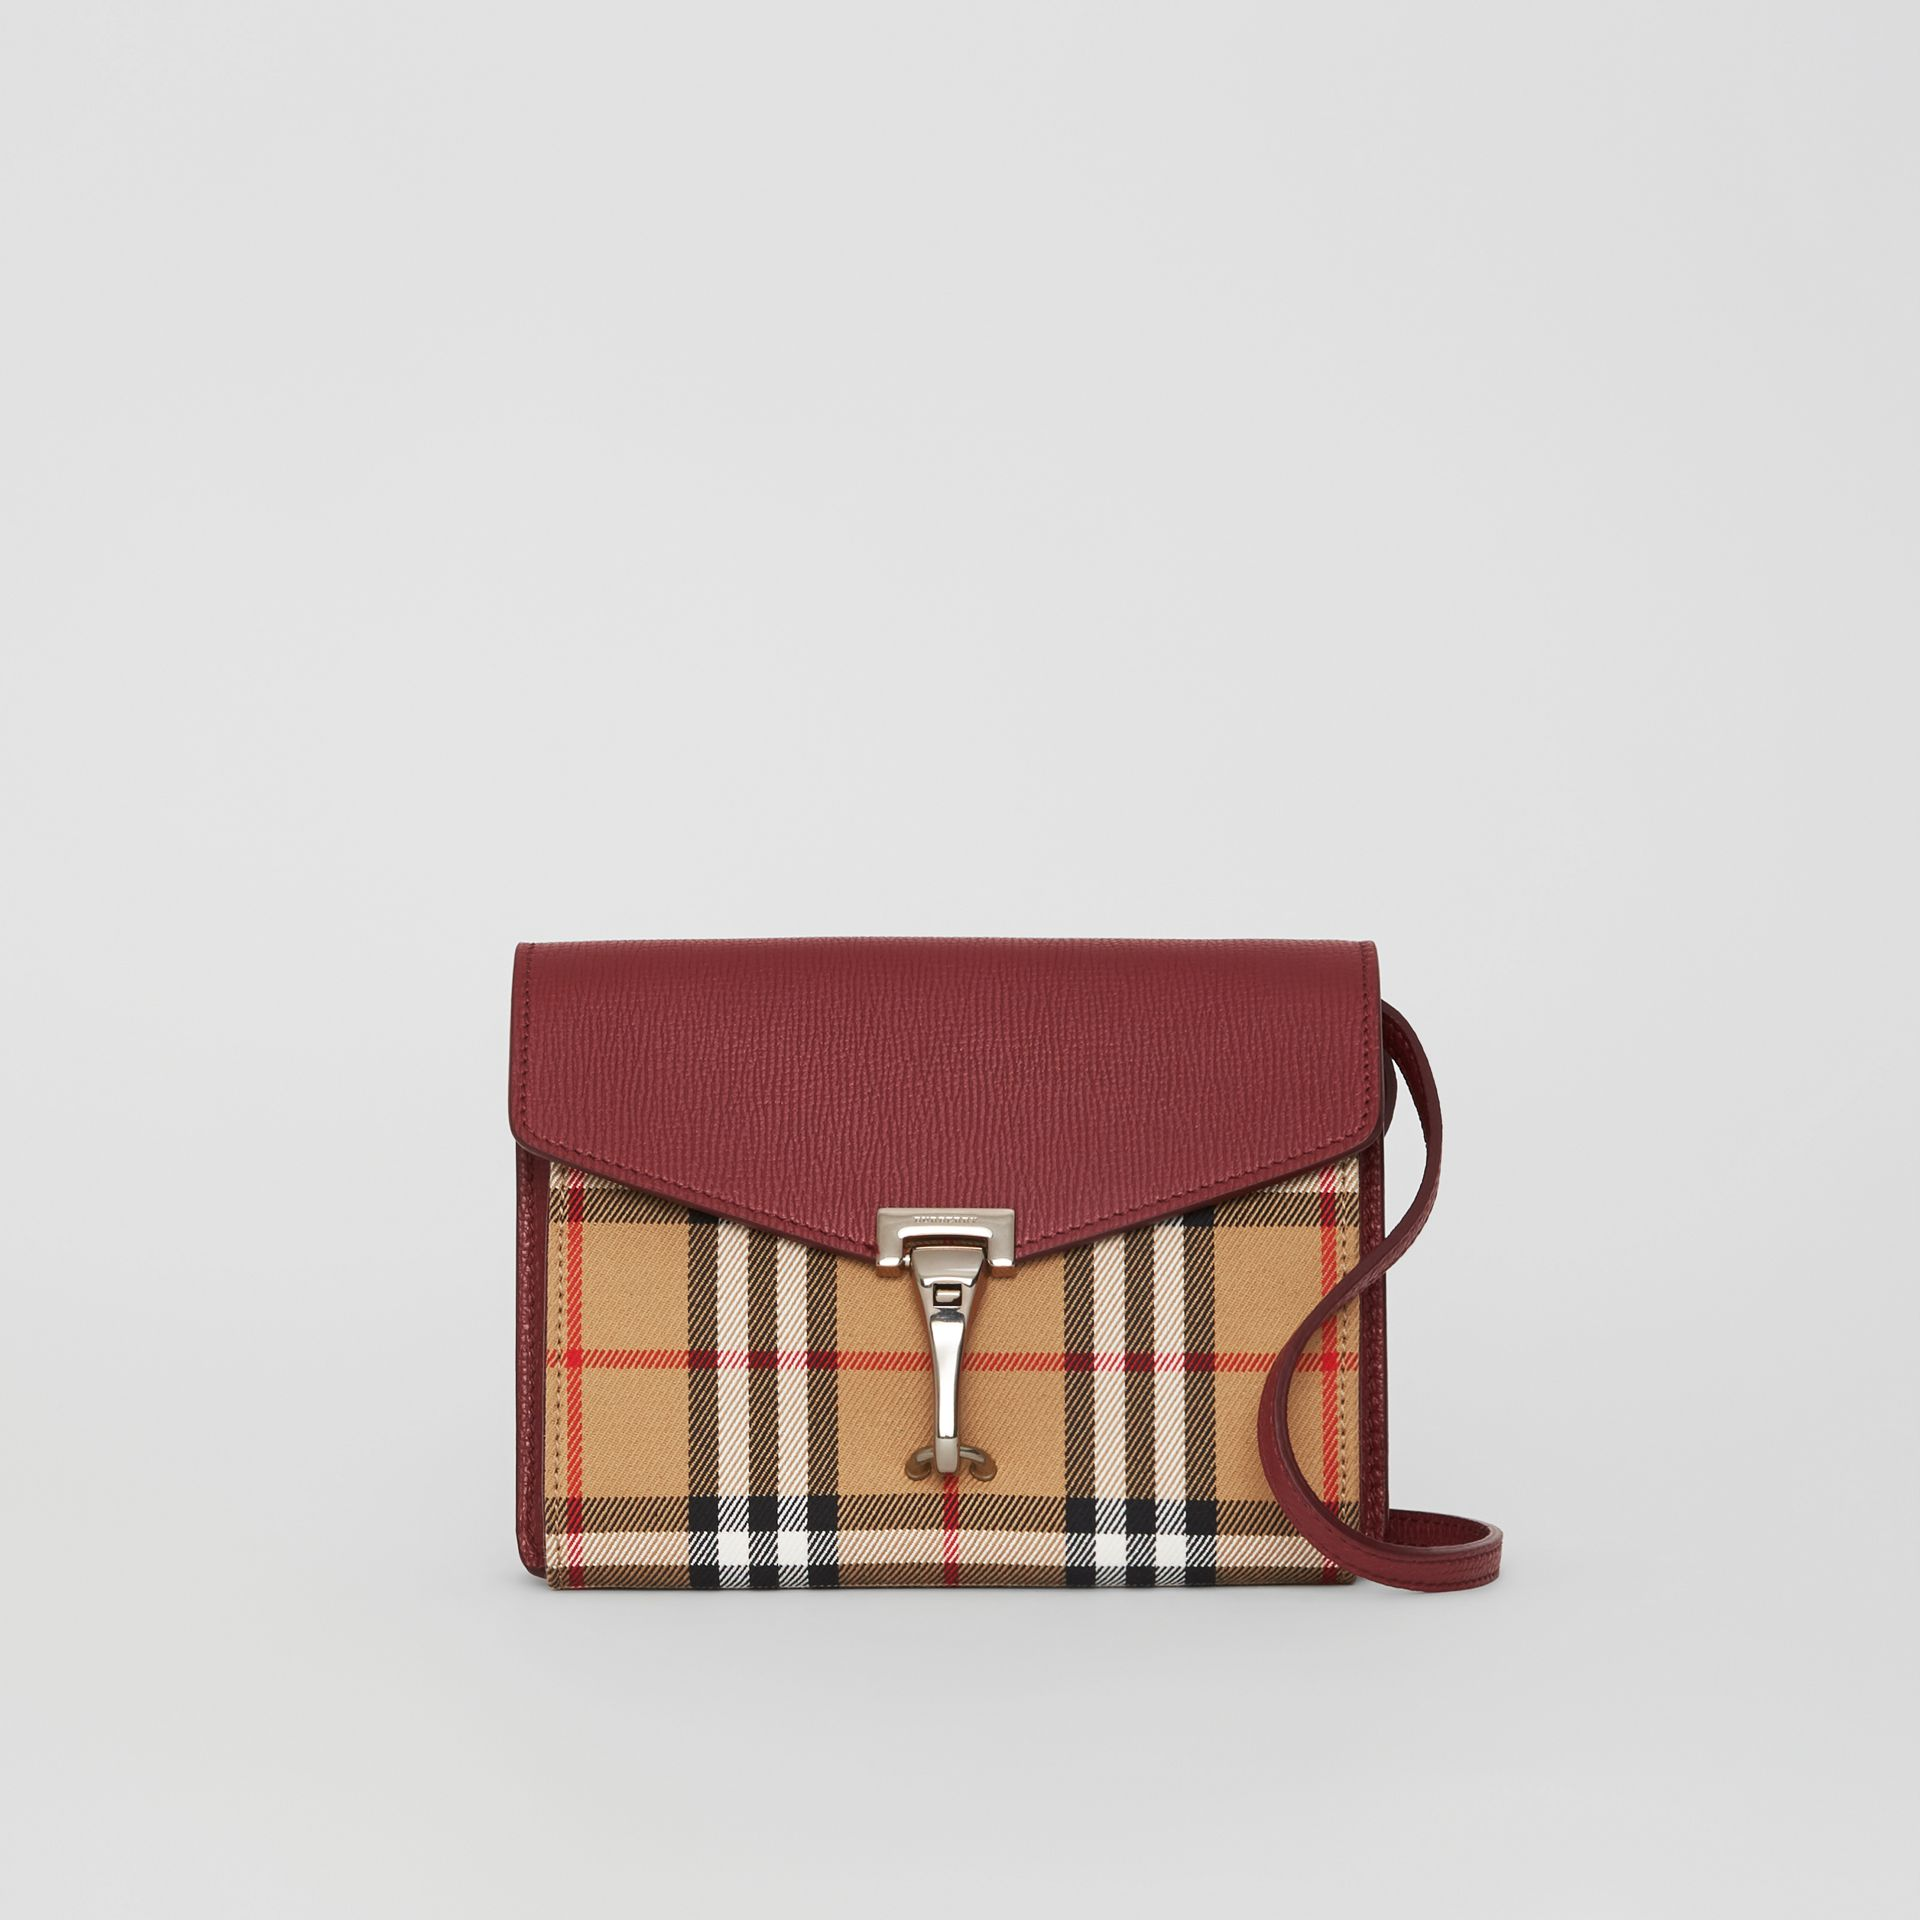 Mini Leather and Vintage Check Crossbody Bag in Crimson - Women | Burberry Hong Kong S.A.R - gallery image 0